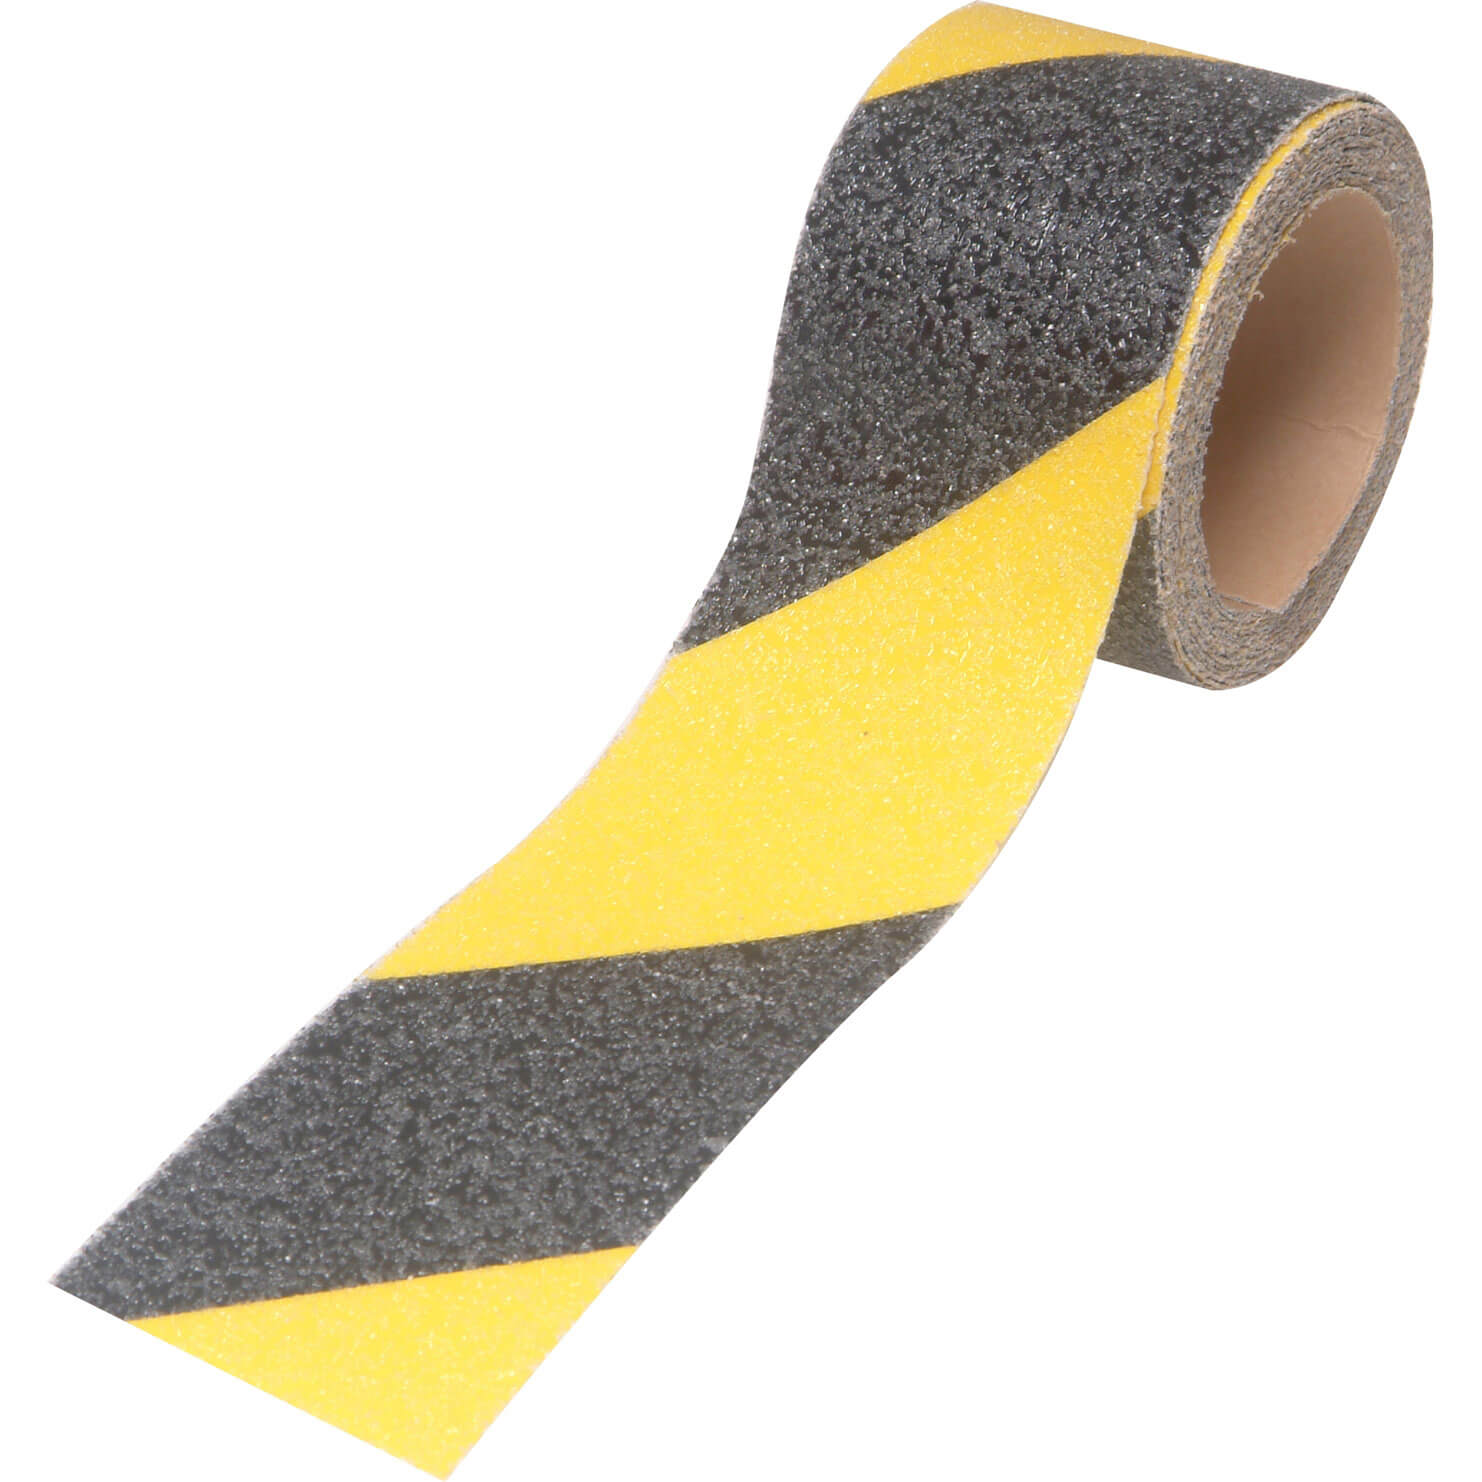 Image of Faithfull Black / Yellow Anti Slip Tape Black / Yellow 50mm 3m